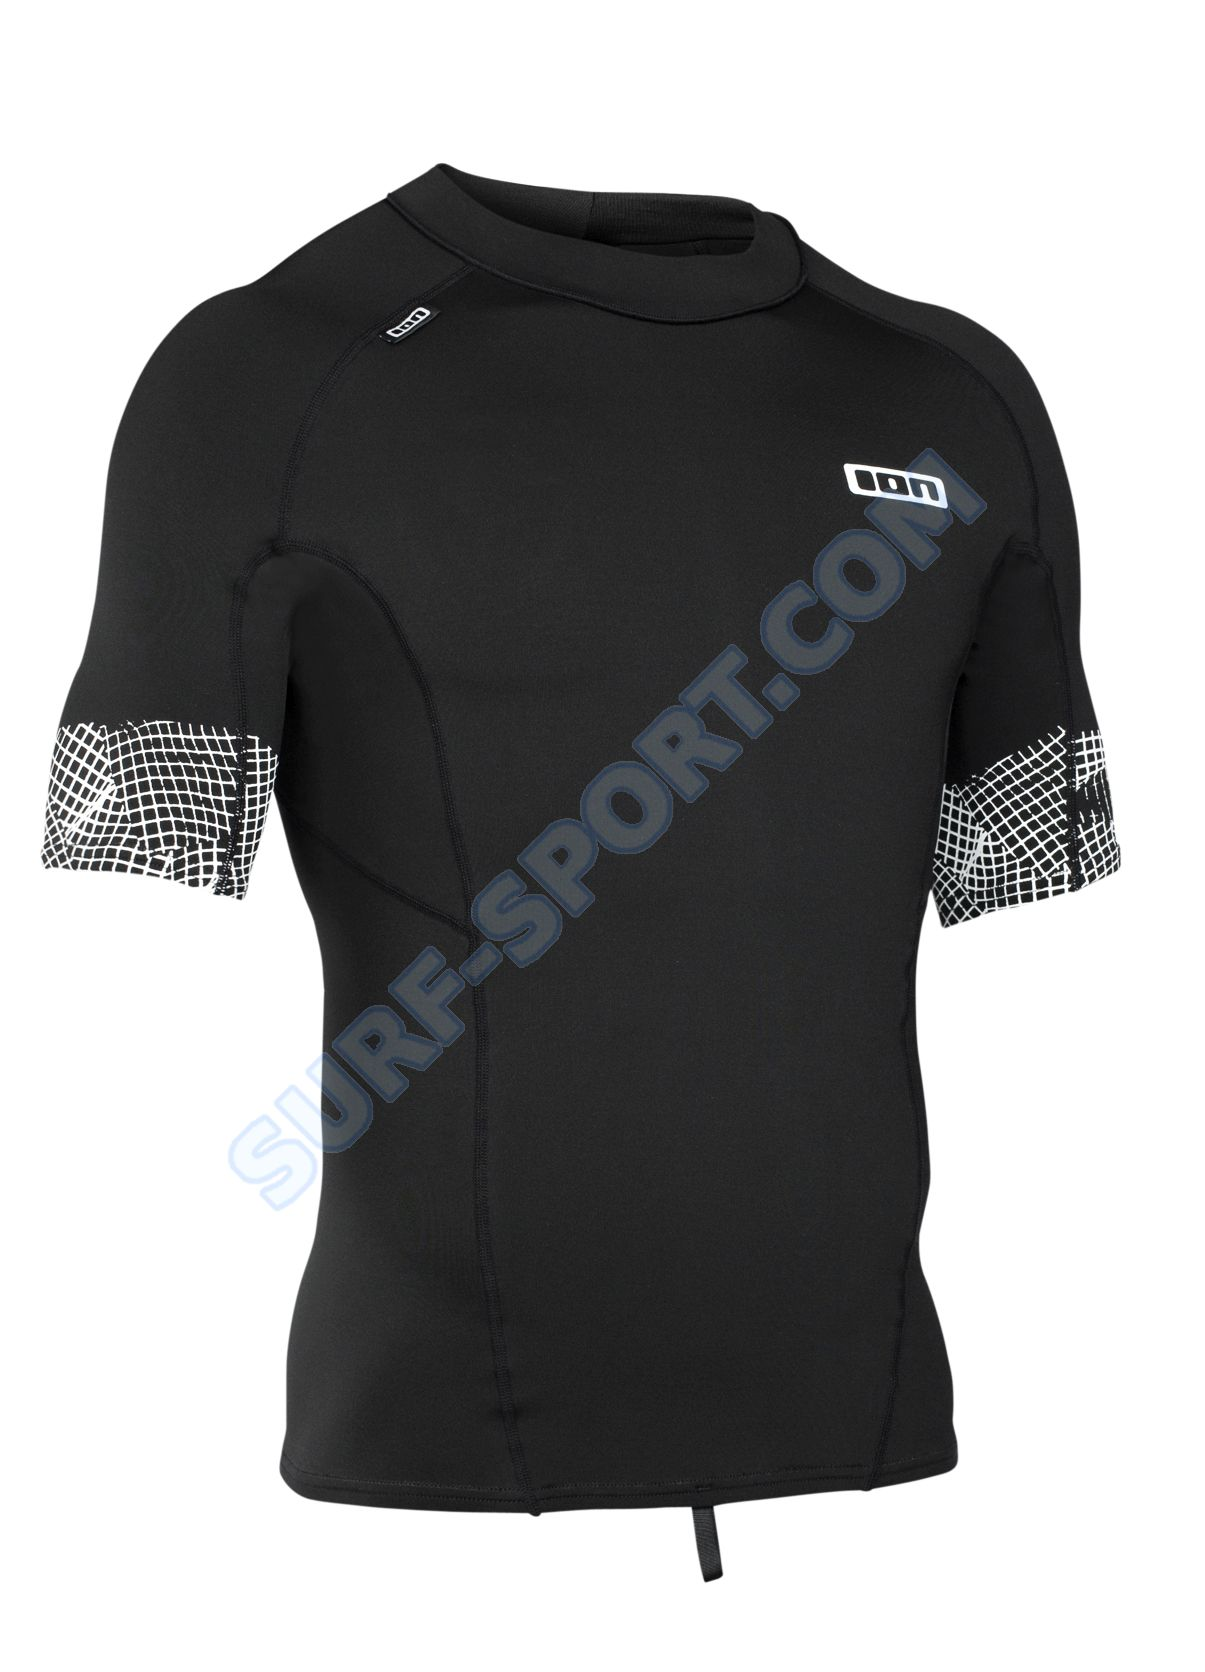 ION-Thermo Top Men SS_front.jpg